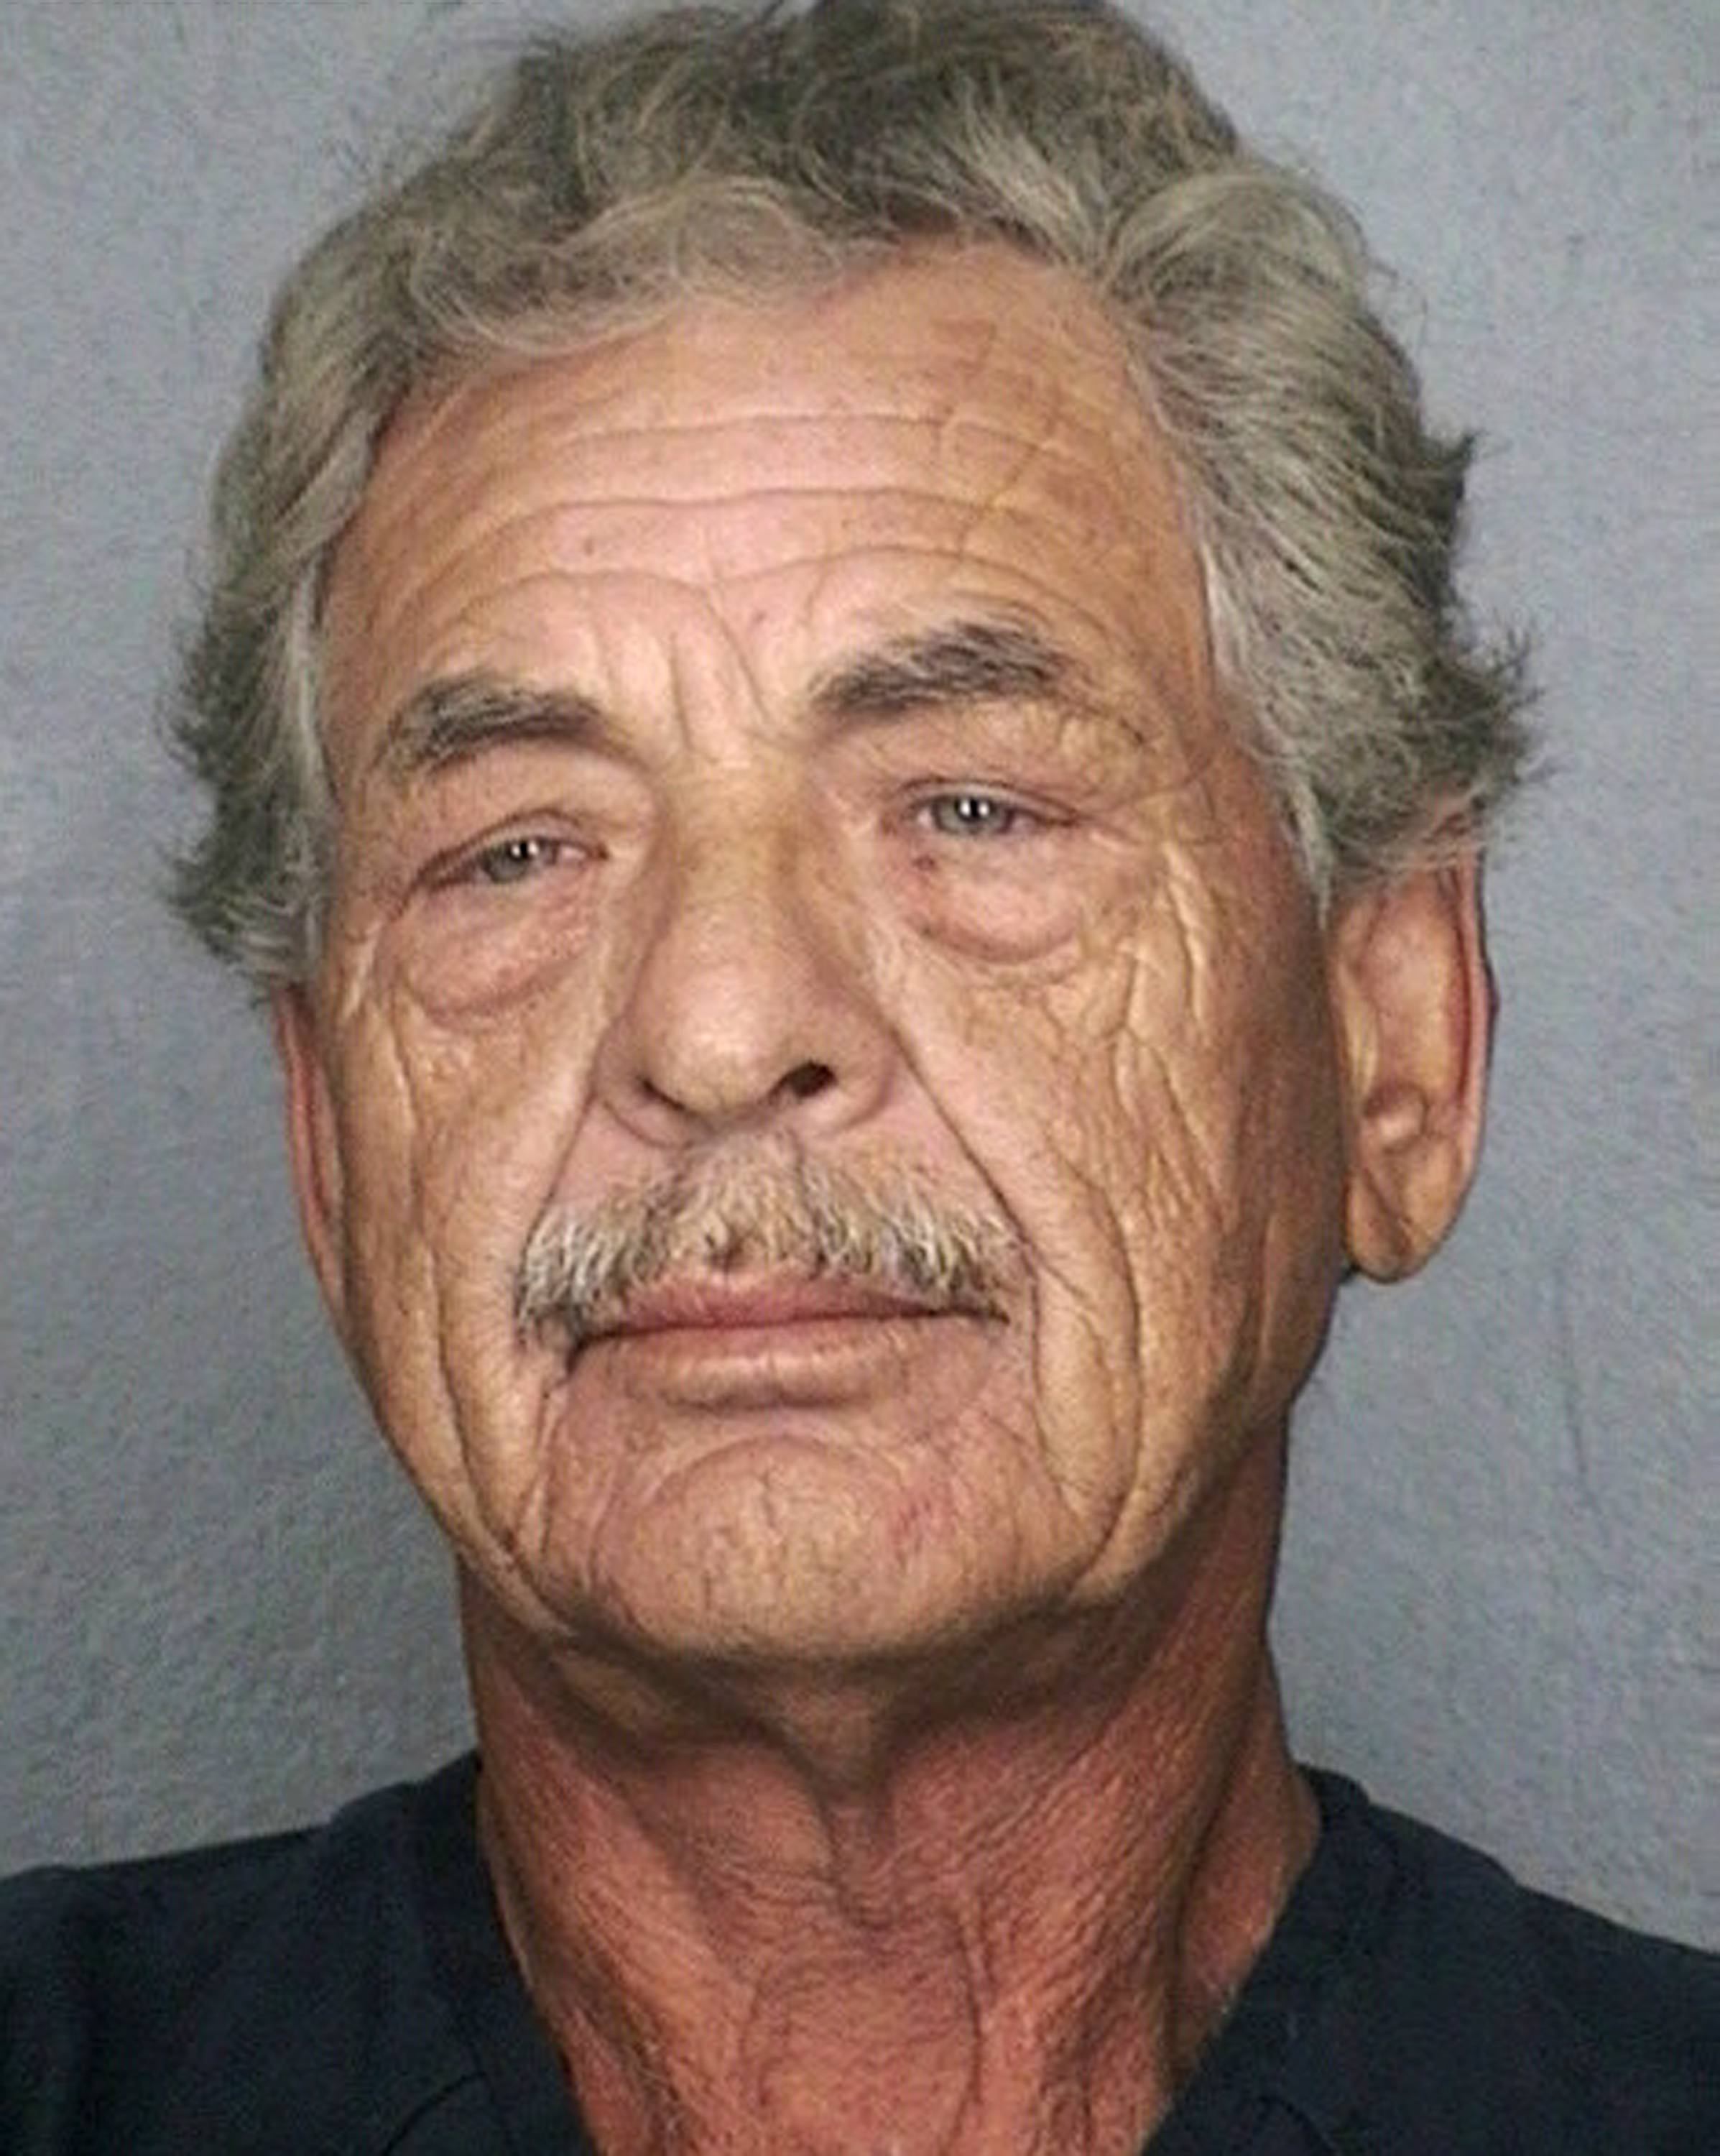 James Robert Jones, 59. Authorities say Jones, who escaped federal custody more than three decades ago, was arrested Thursday, when he showed up for work in Pompano Beach, Fla.